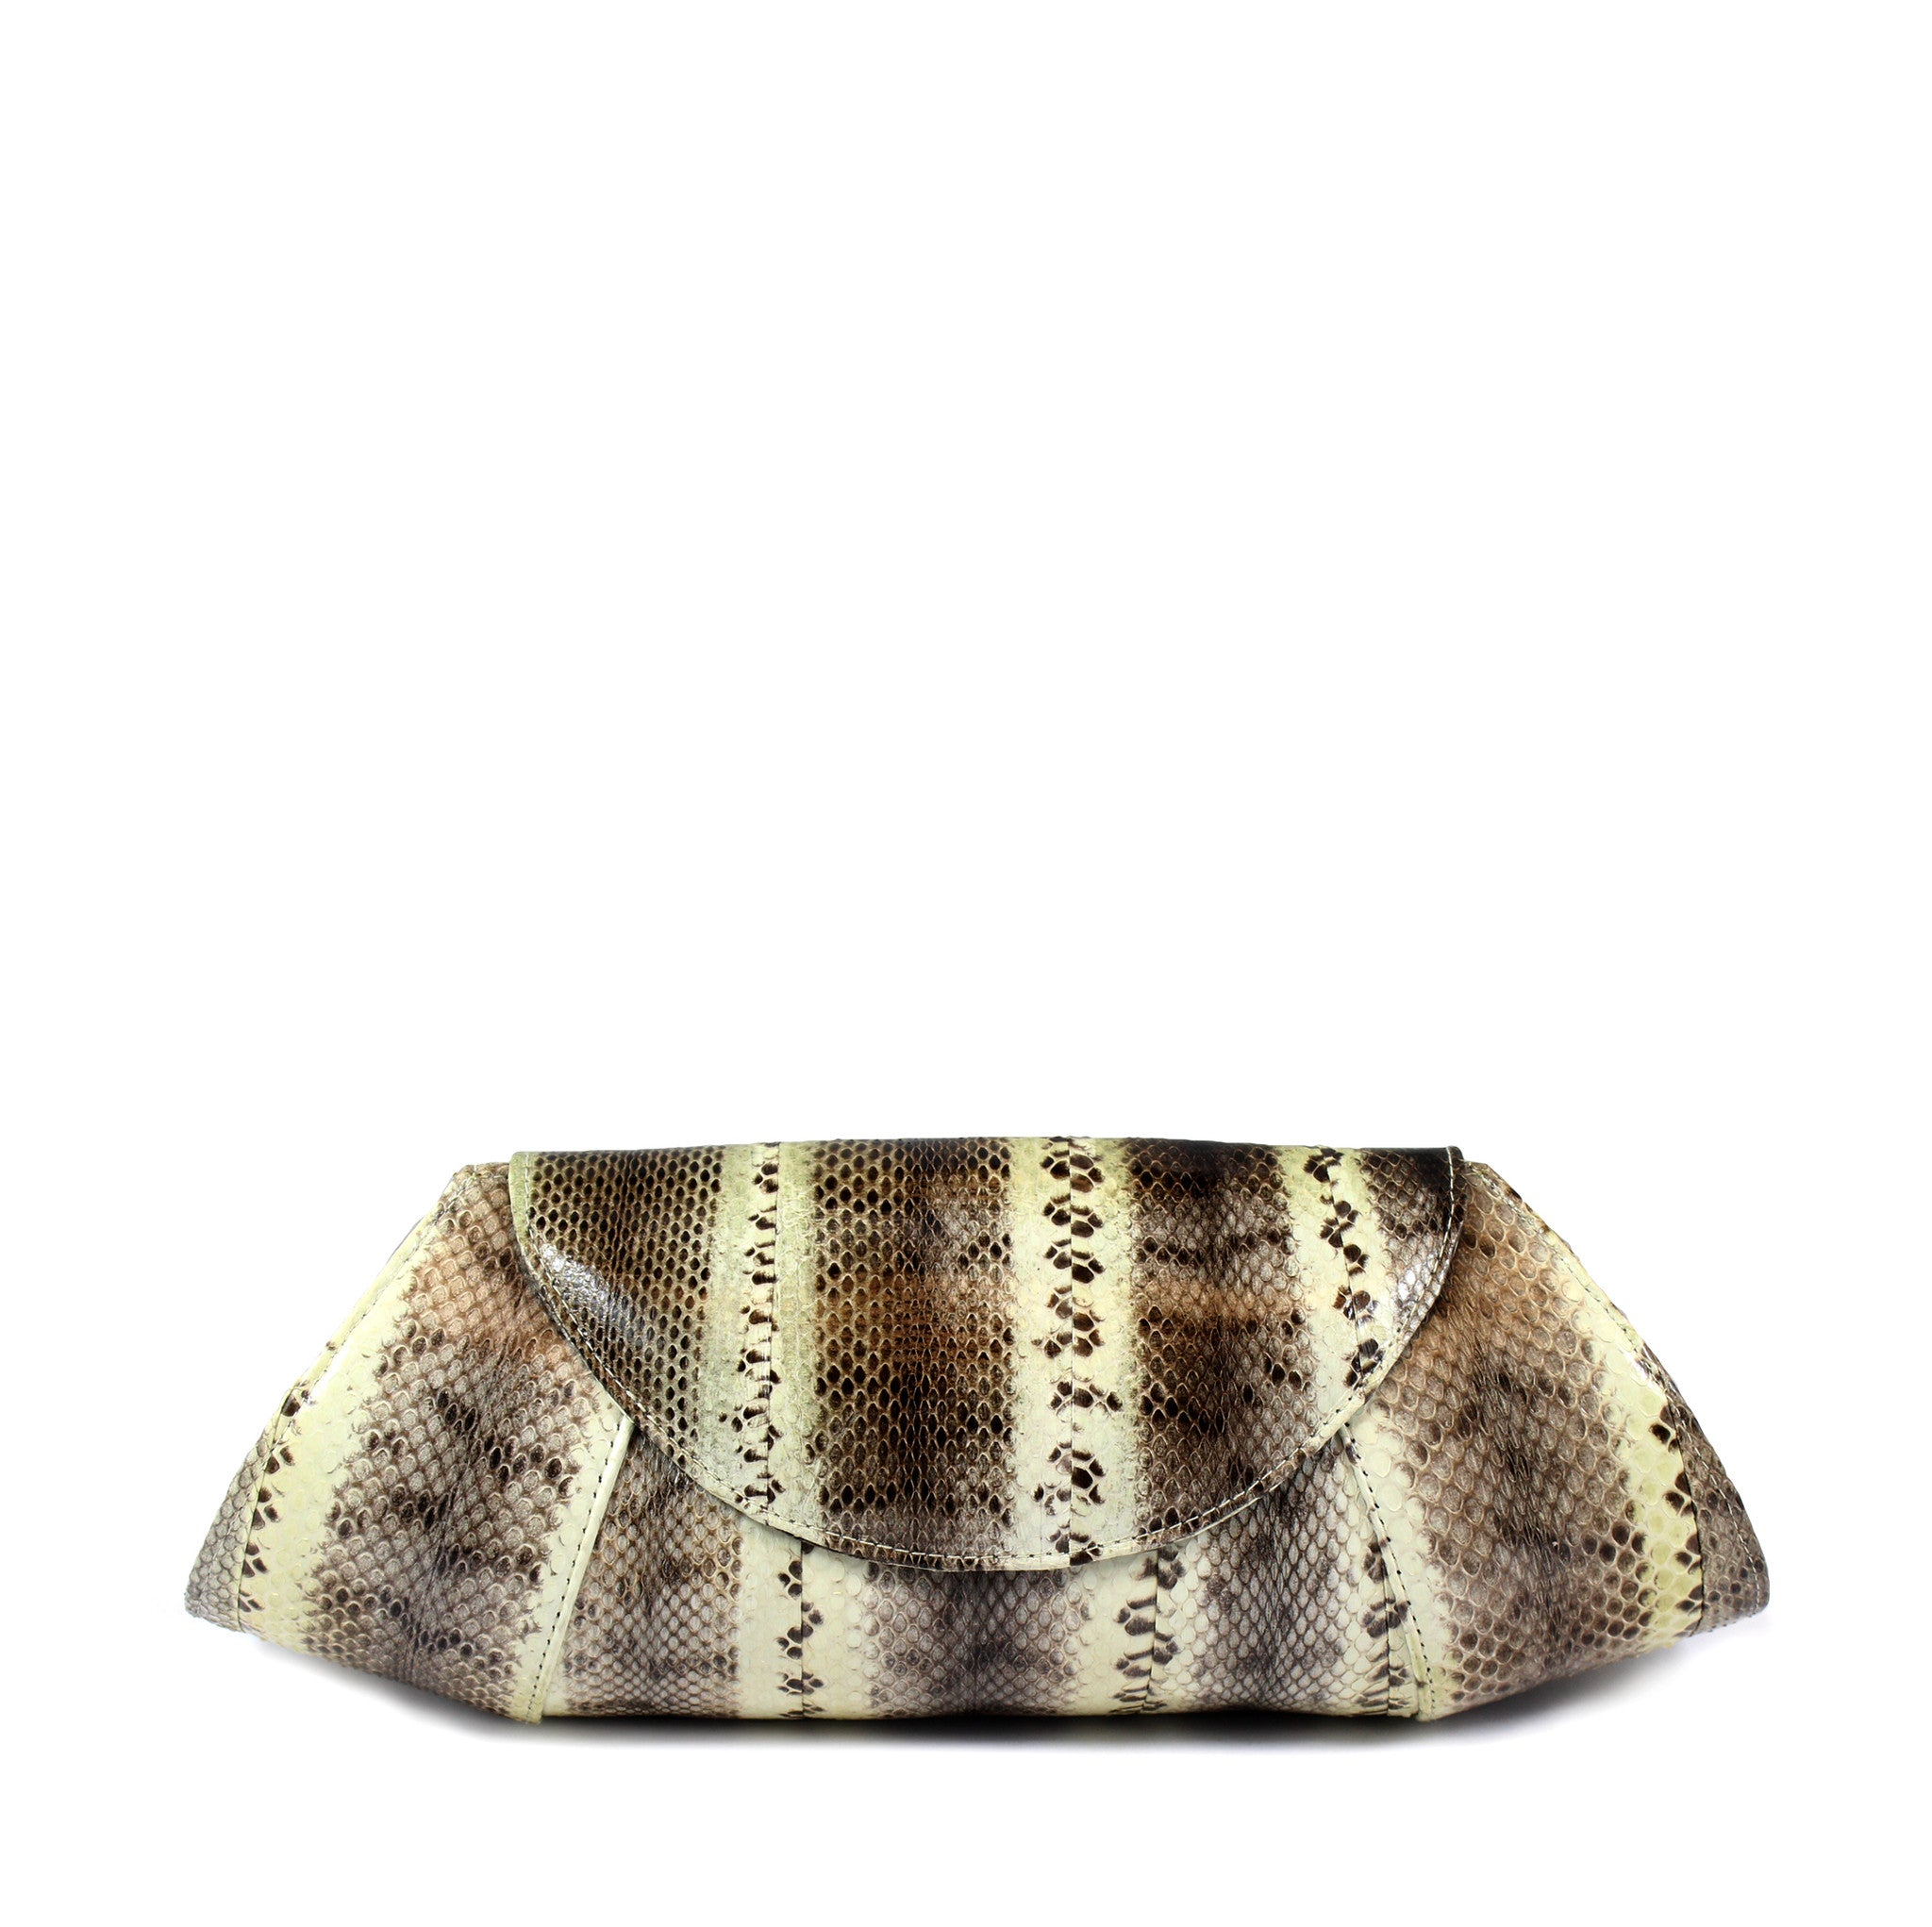 Beirn Large Snakeskin Clutch - Encore Consignment - 1